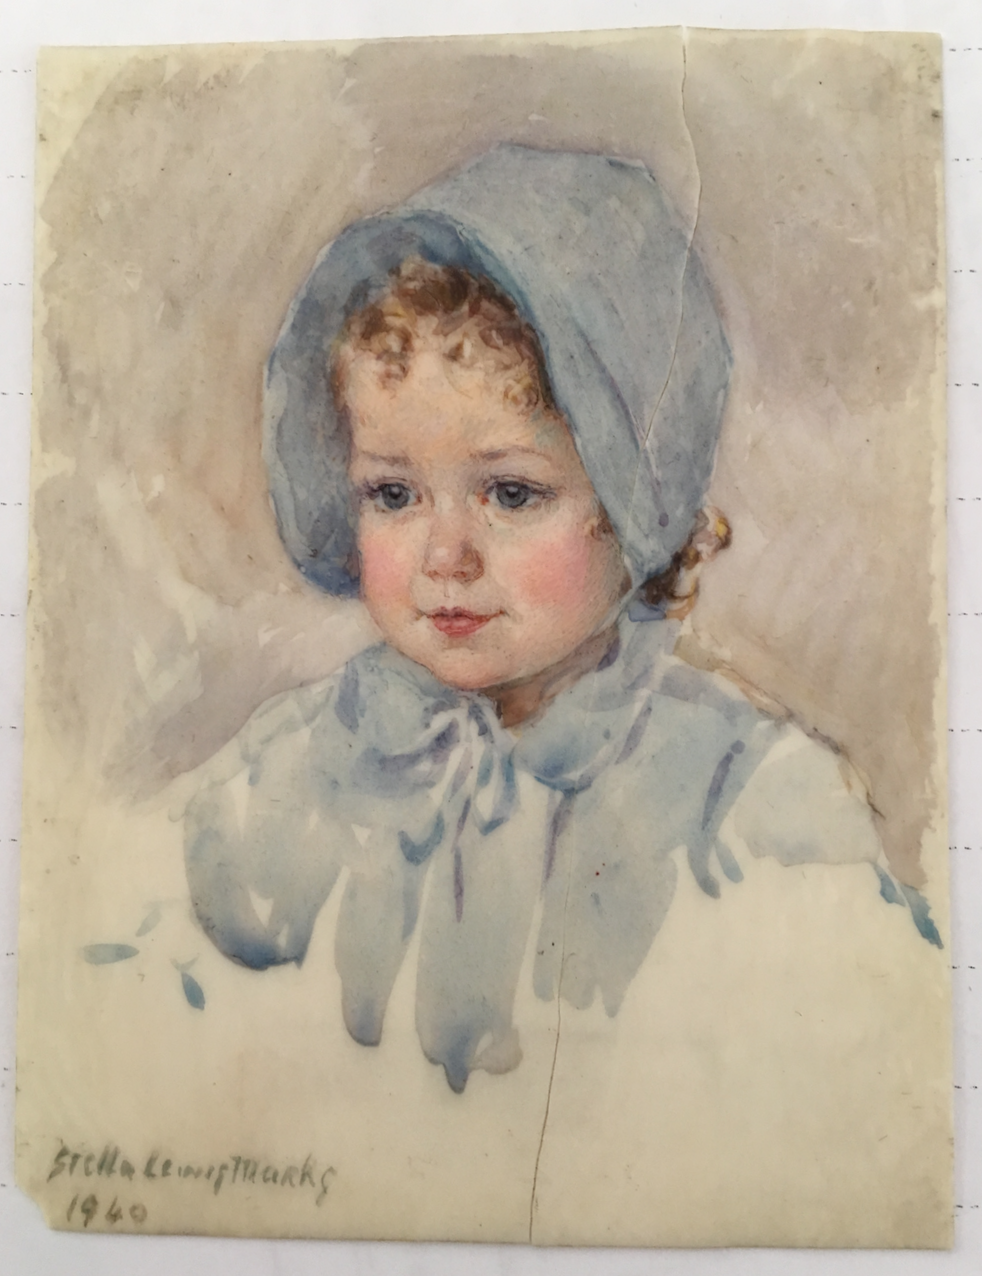 Portrait miniature of Sonia Harrison by Stella Marks, 1940. Copyright Stella Marks' Estate all rights reserved